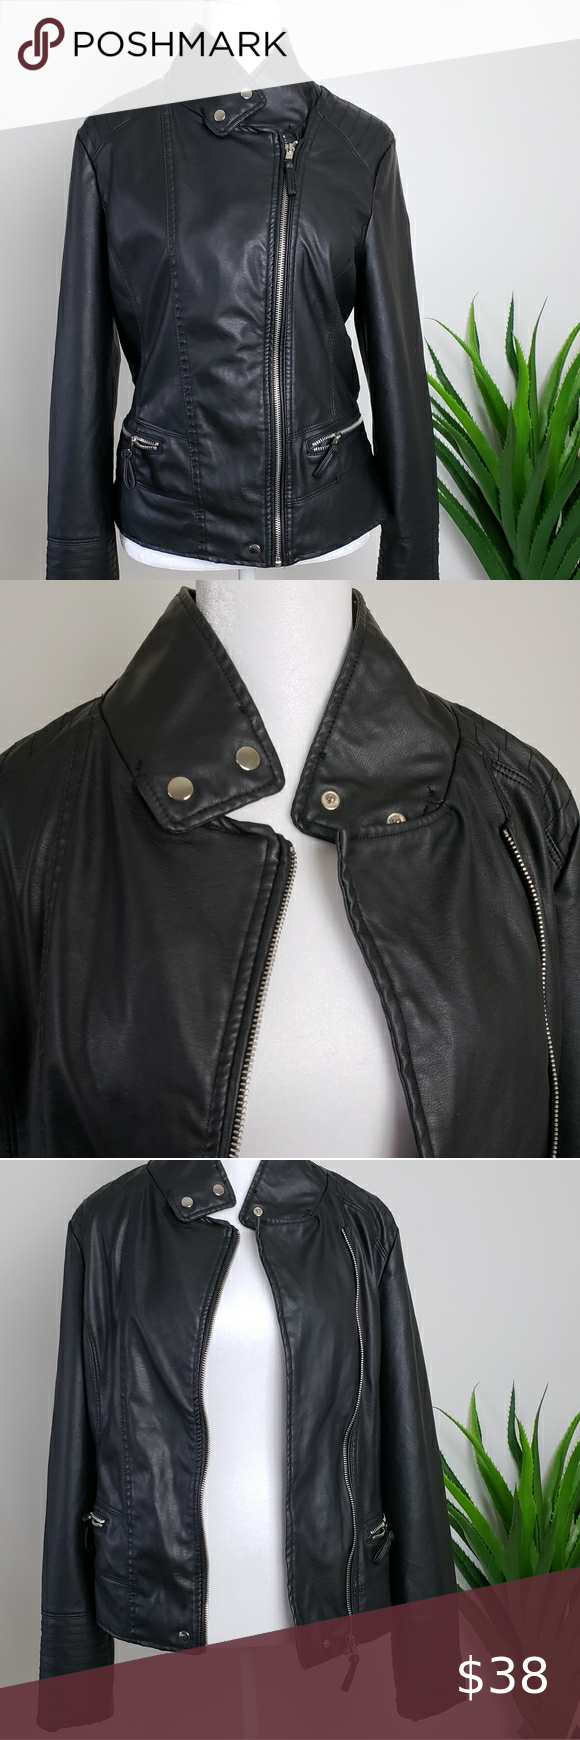 New Look Women S Leather Jacket Leather Jackets Women New Look Women Leather Jacket [ 1740 x 580 Pixel ]